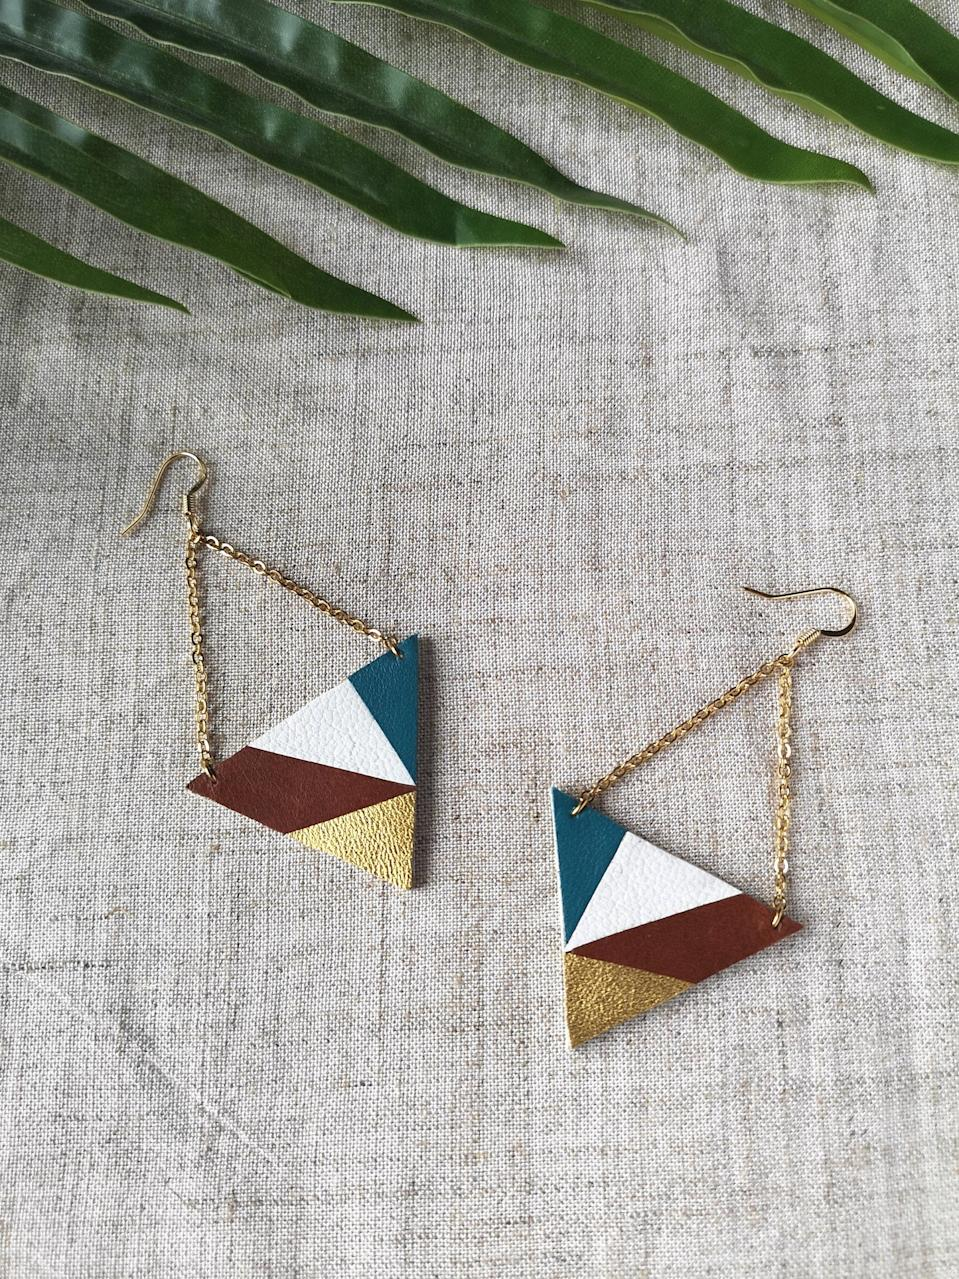 Blue, white, brown and golden earrings with chain for her. Image via Etsy.